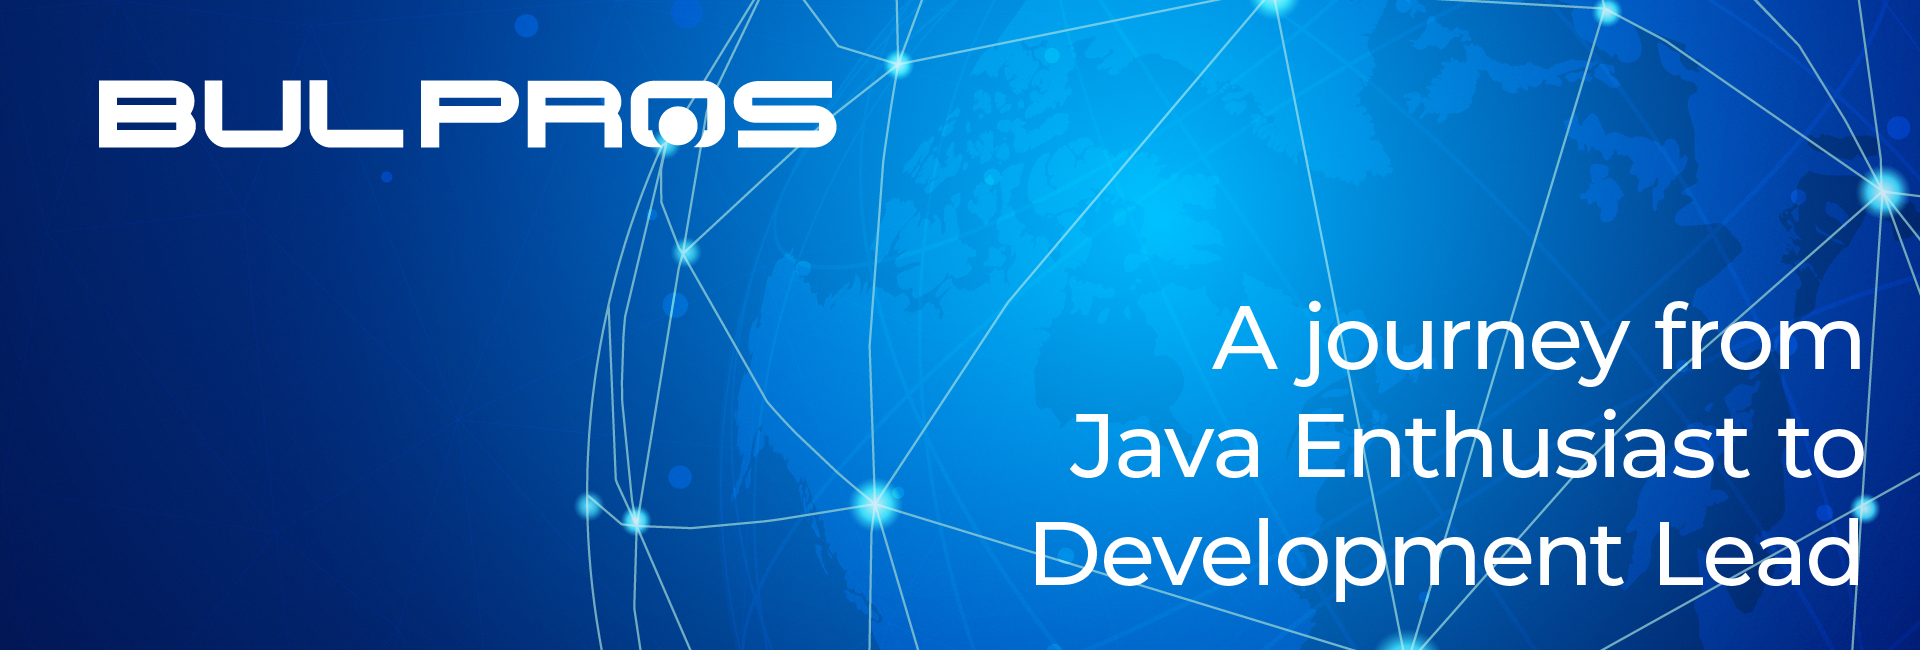 A journey from Java Enthusiast to Development Lead